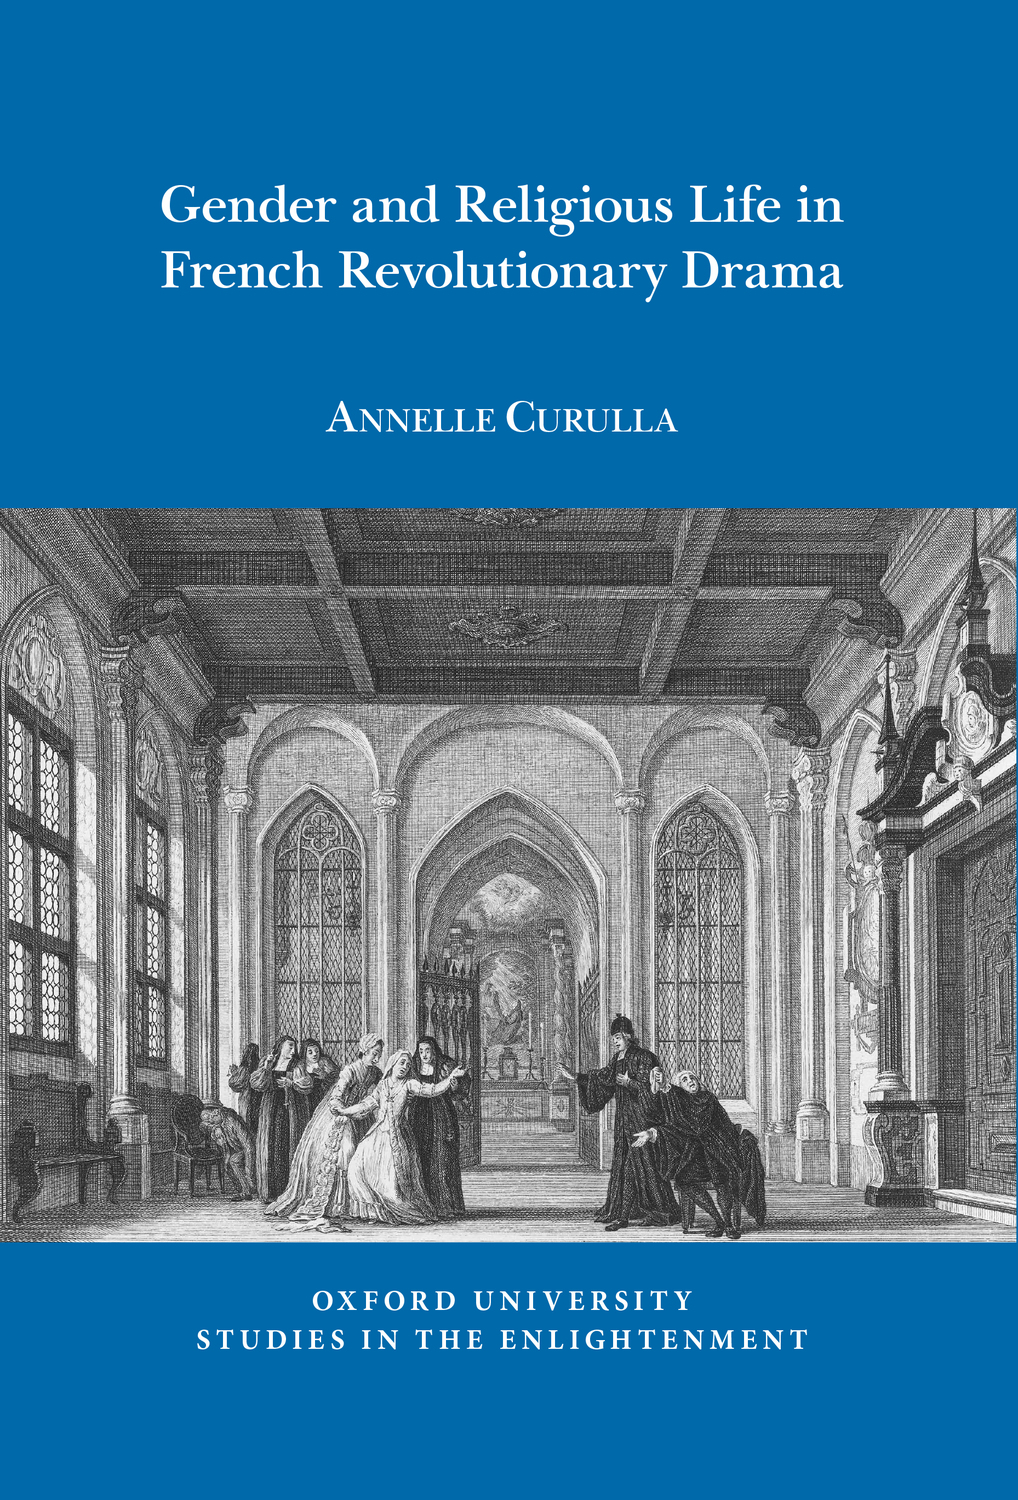 A. Curulla, Gender and Religious Life in French Revolutionary Drama